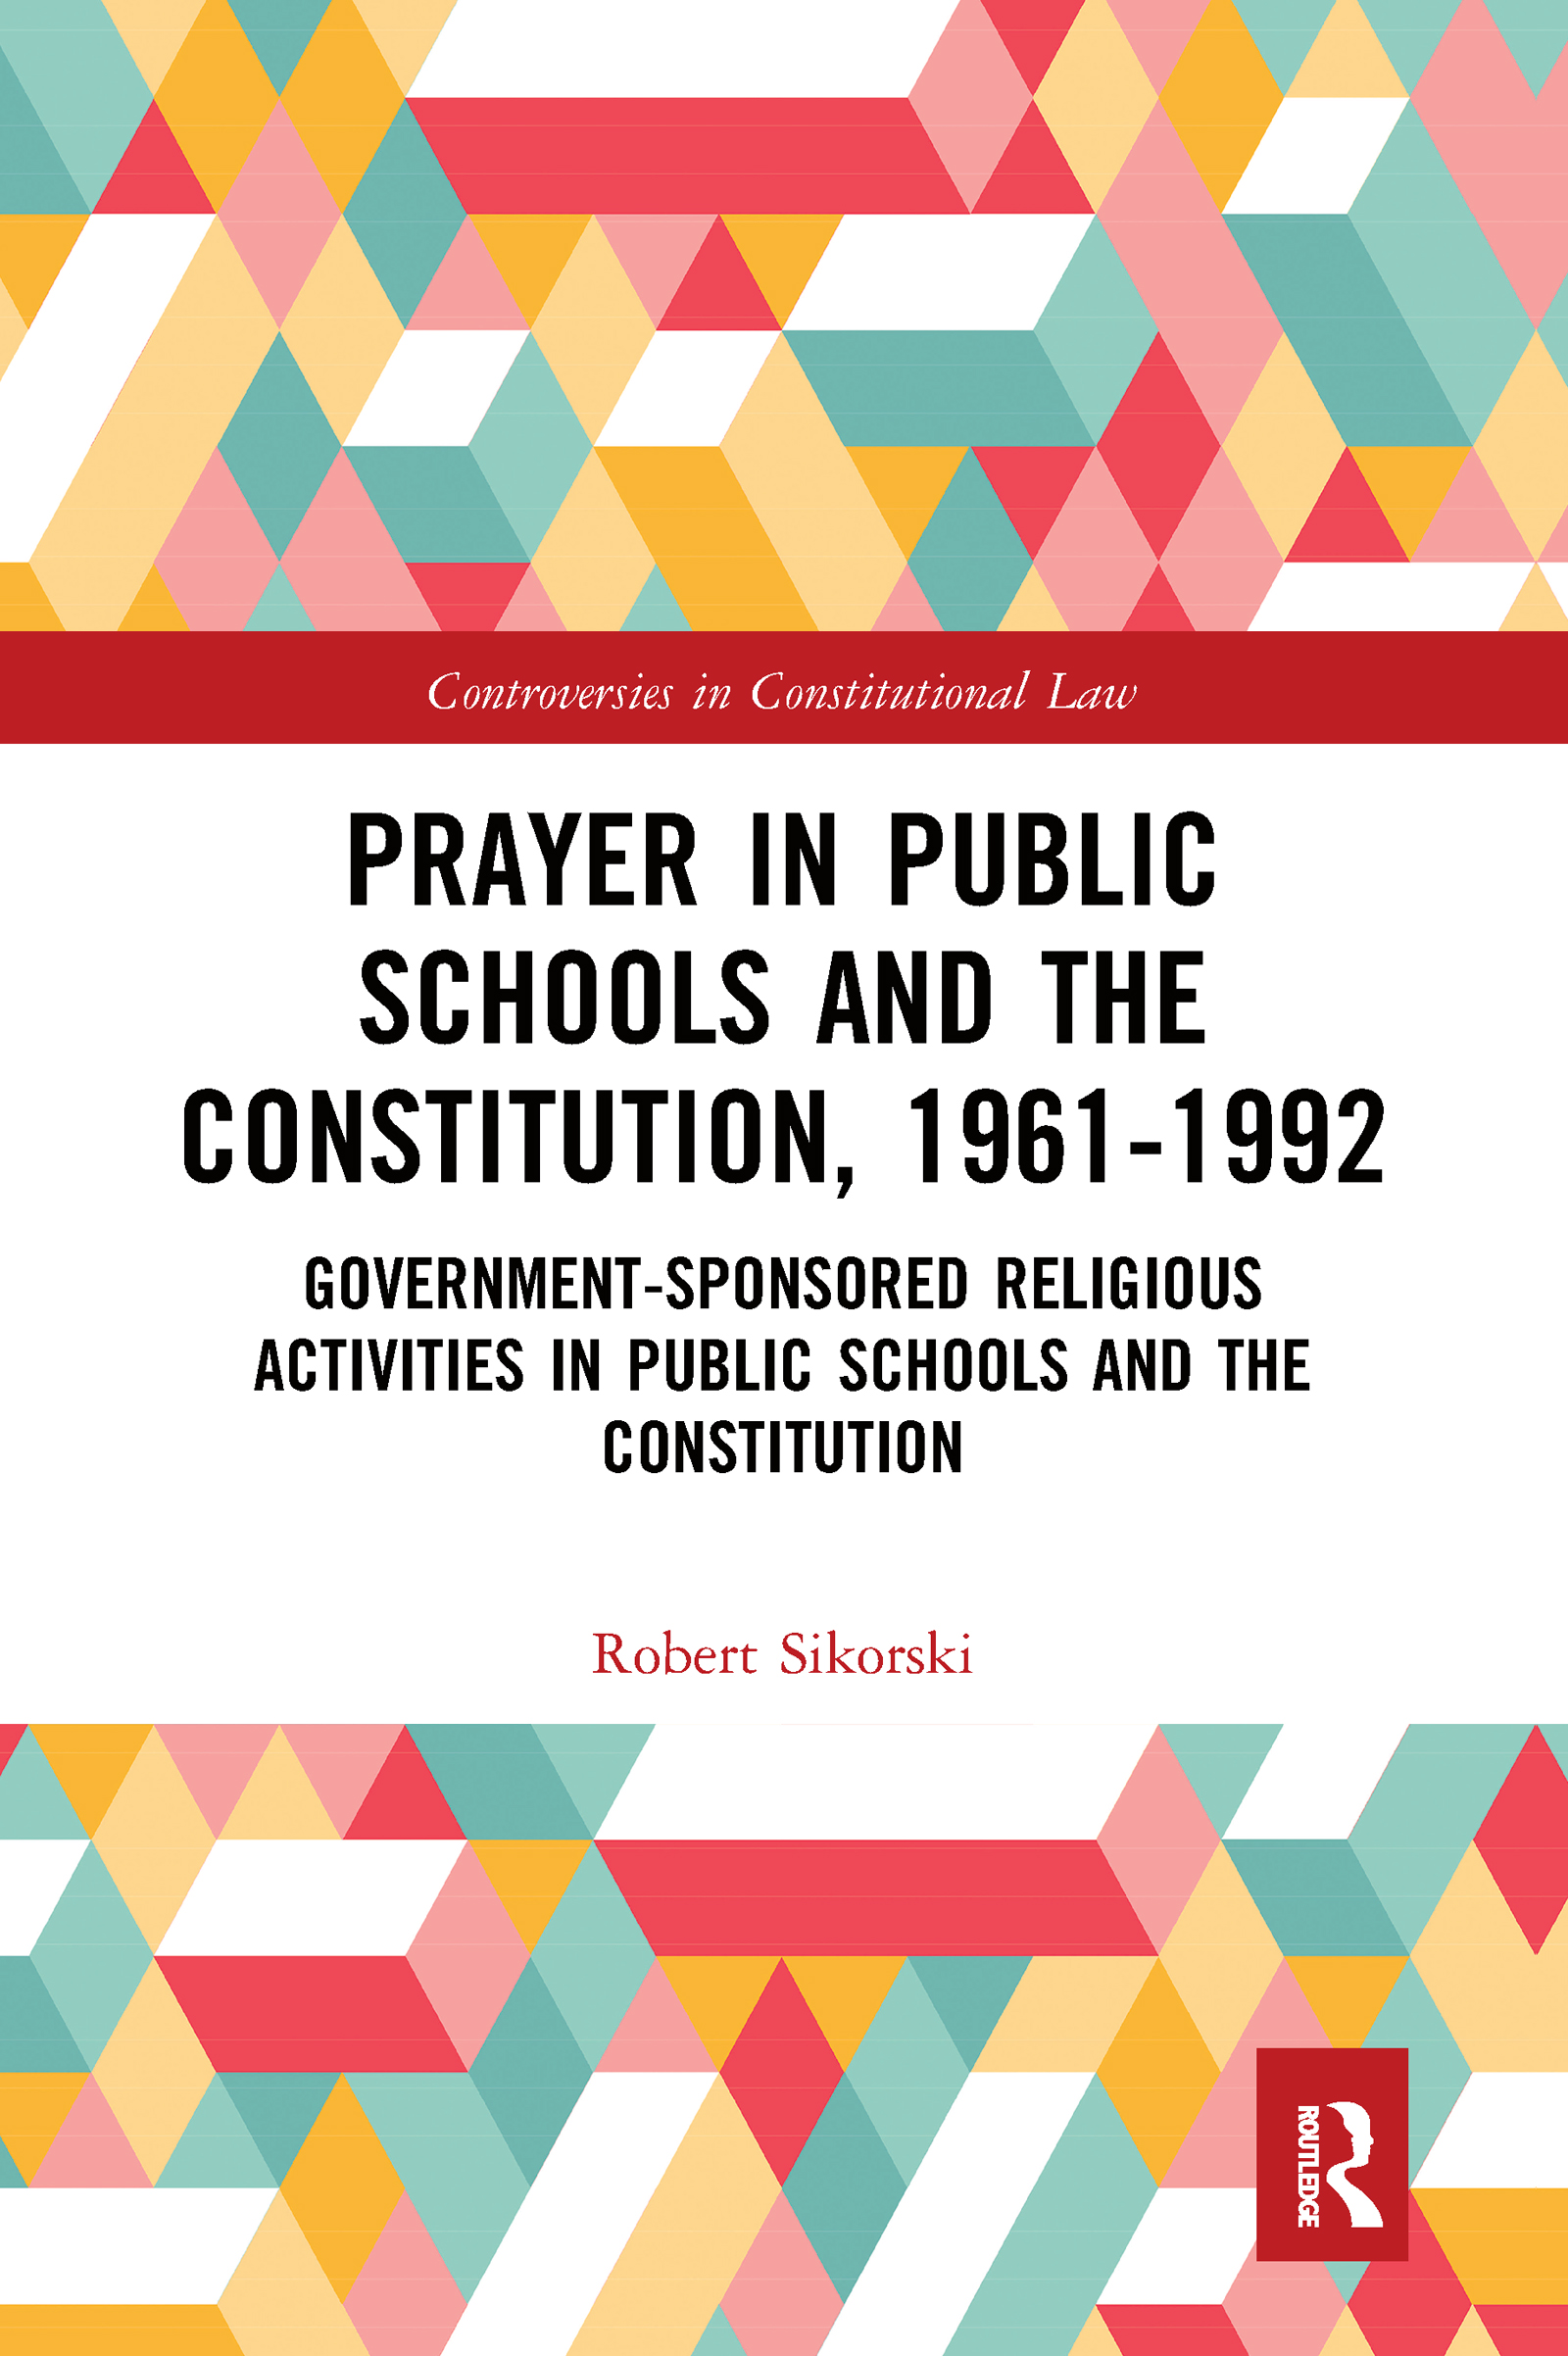 Prayer in Public Schools and the Constitution, 1961-1992